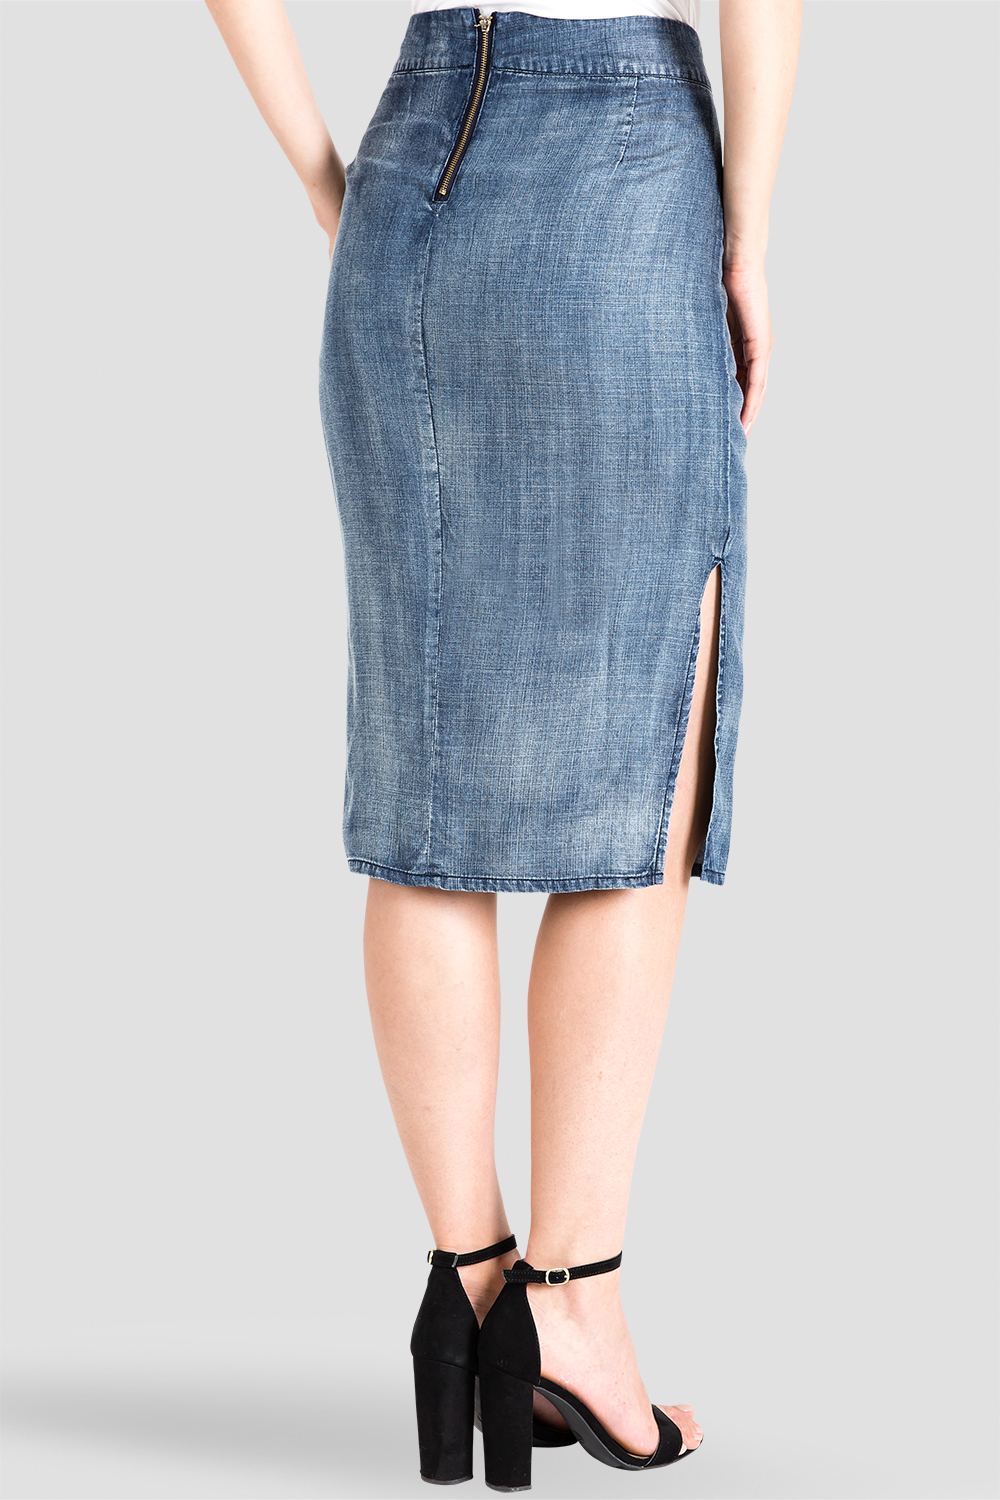 Standards & Practices High-Waist Tencel Chambray Pencil Skirt